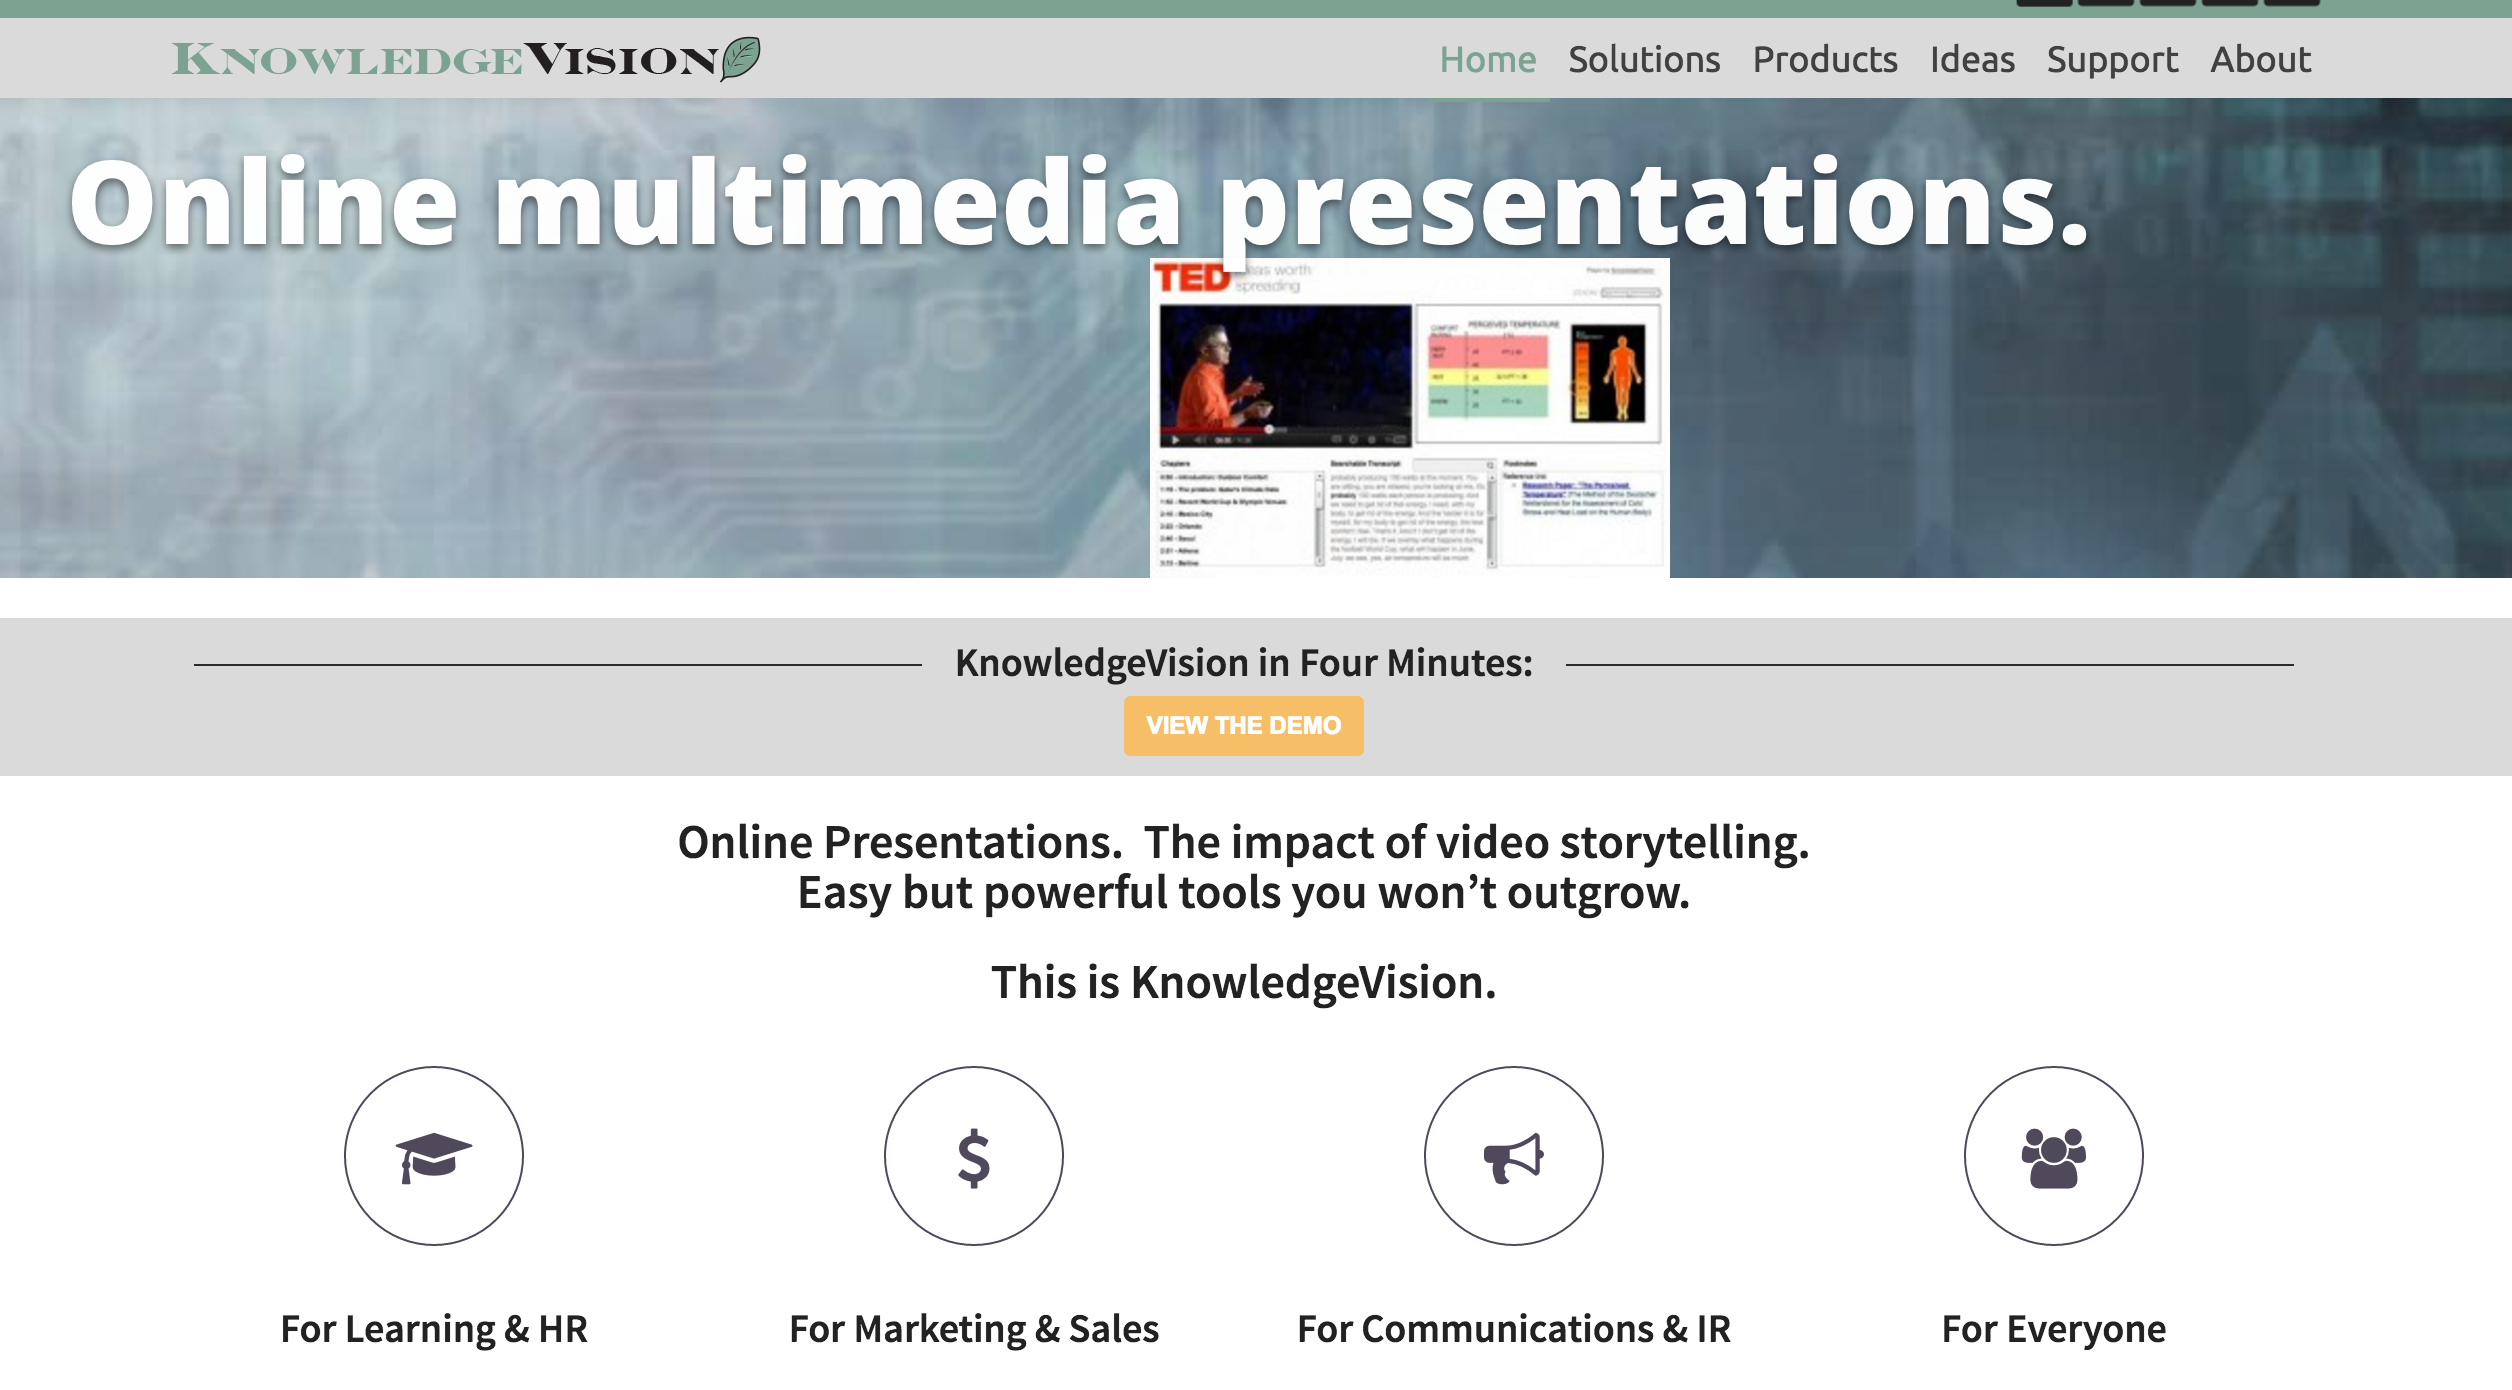 KnowledgeVision presentation tool